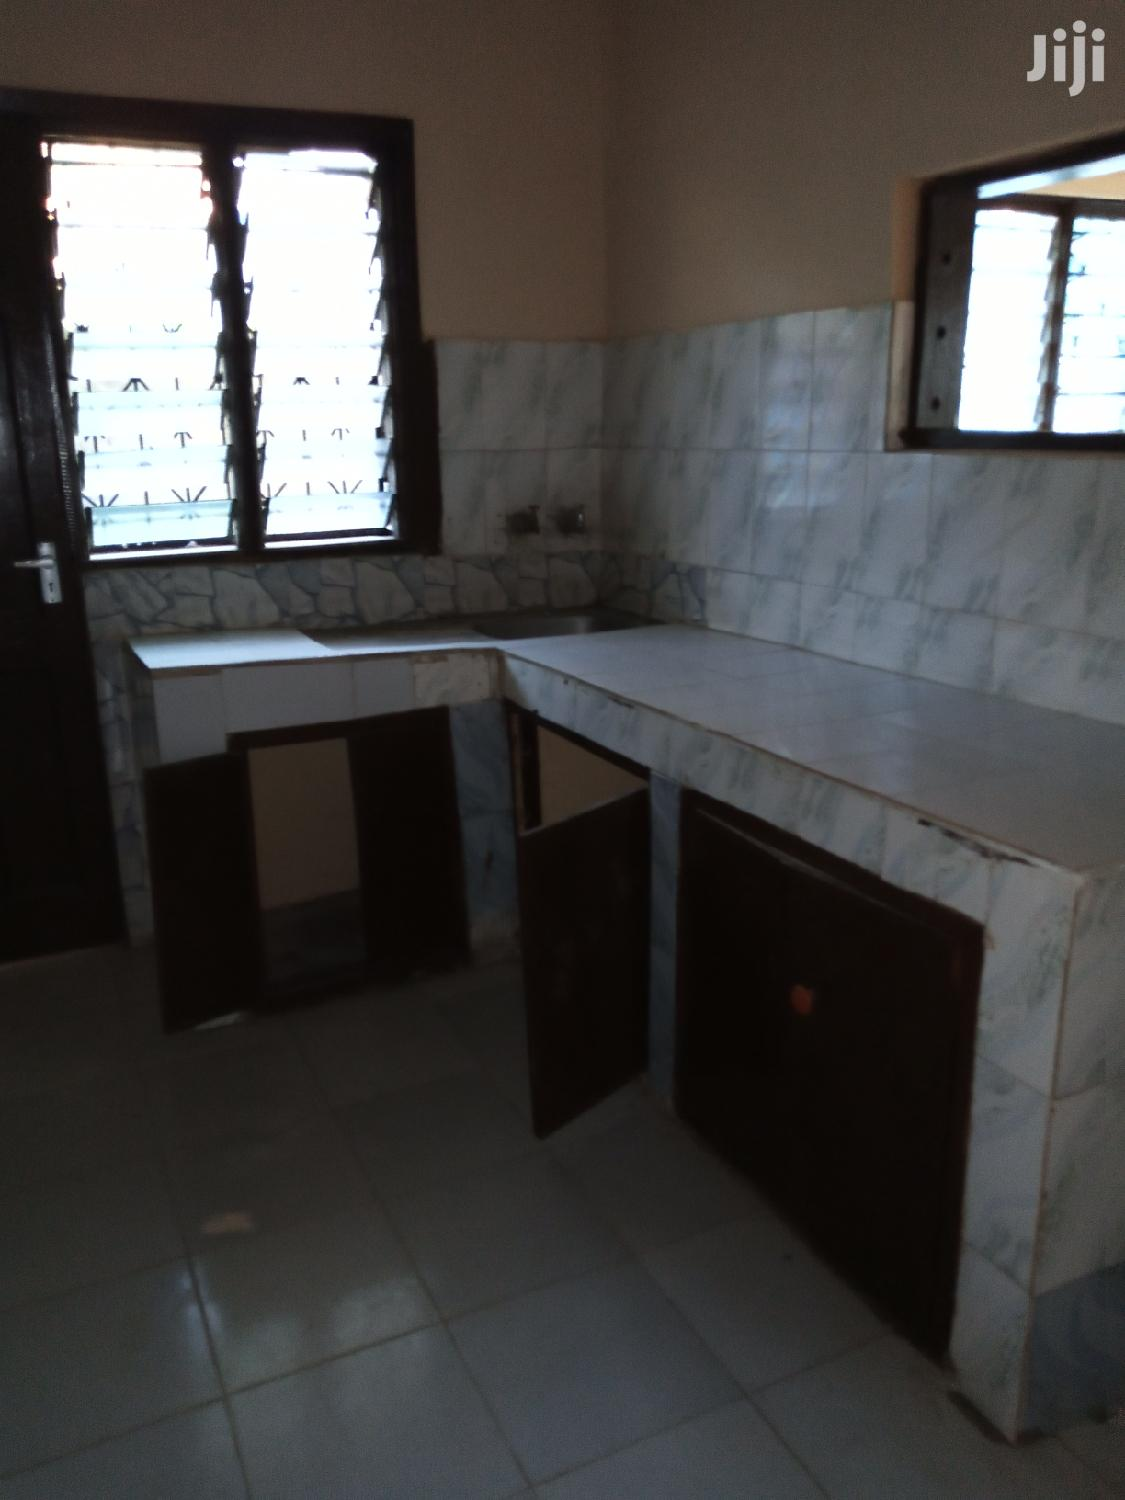 Four Bedroom Bungalow To Let In Kiembeni Blue Estate. | Houses & Apartments For Rent for sale in Kisauni, Mombasa, Kenya